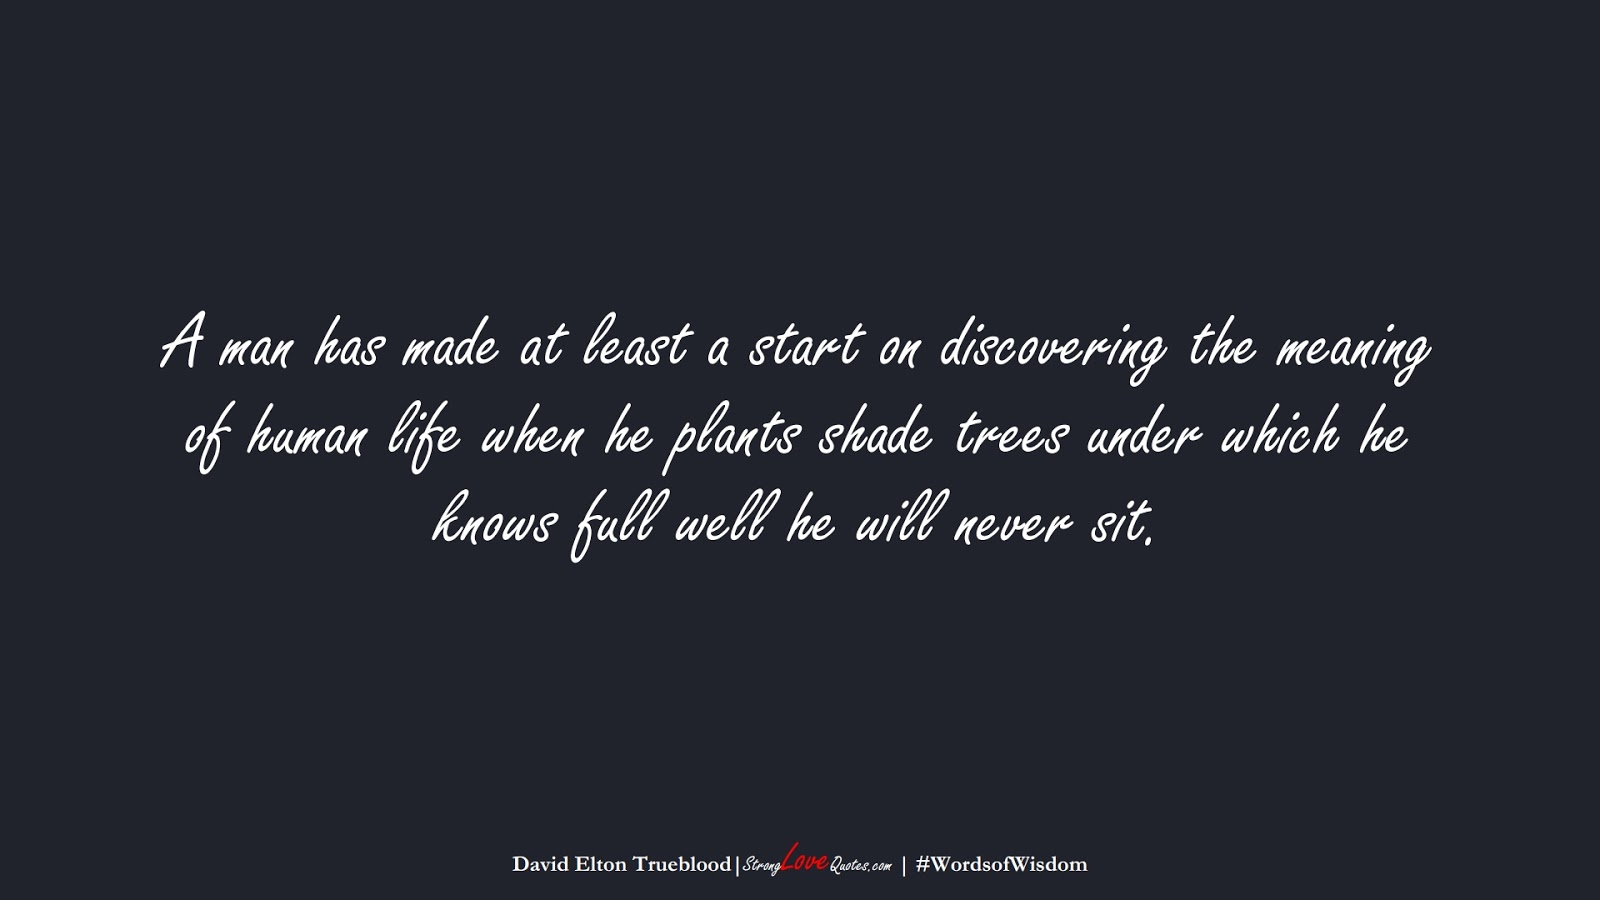 A man has made at least a start on discovering the meaning of human life when he plants shade trees under which he knows full well he will never sit. (David Elton Trueblood);  #WordsofWisdom